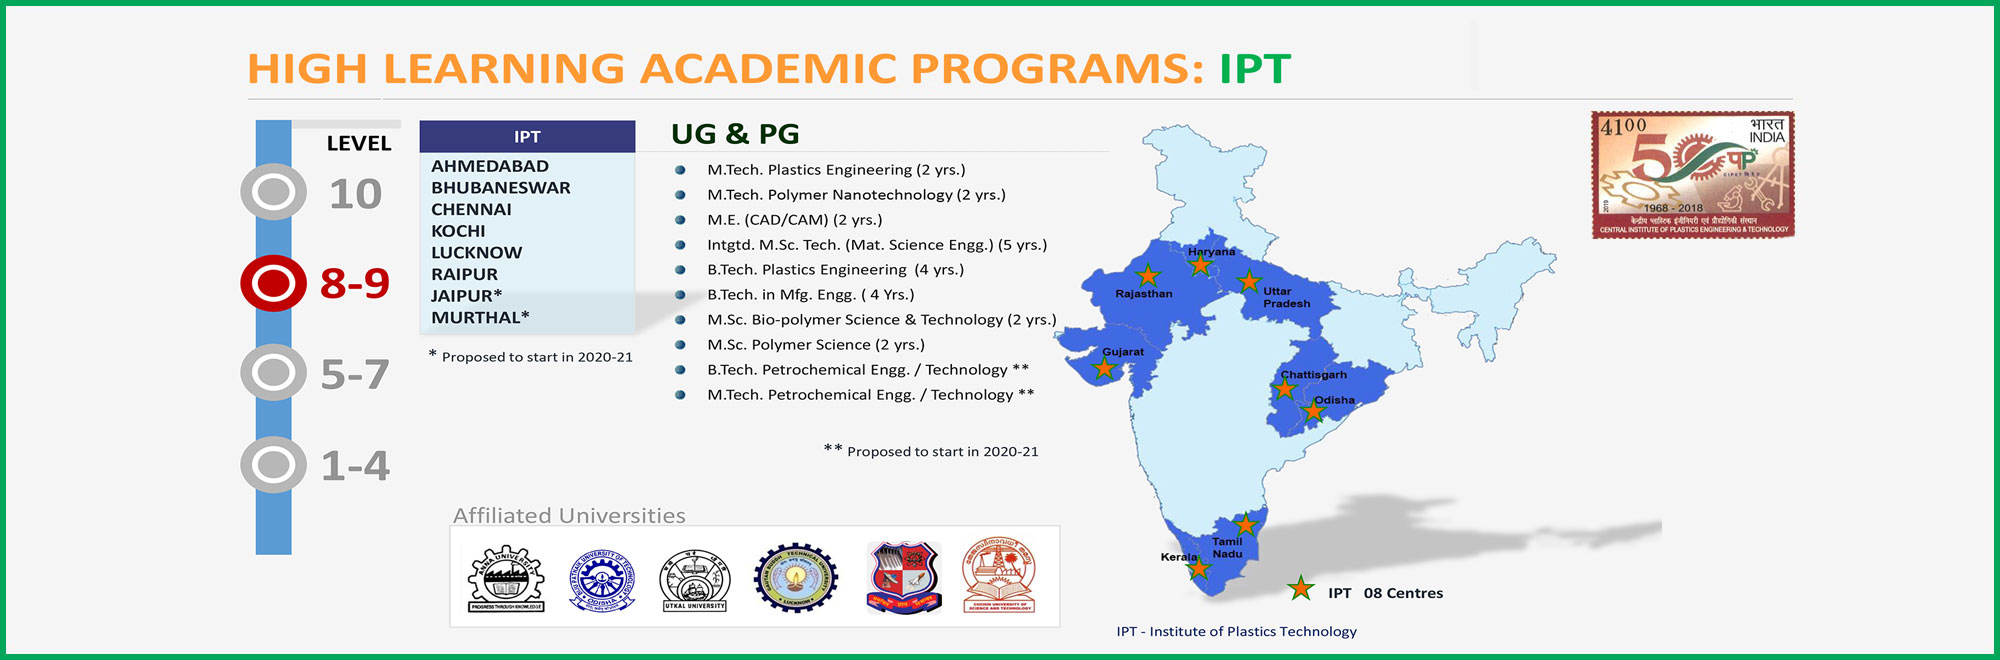 HIGH LEARNING ACADEMIC PROGRAMS: IPT